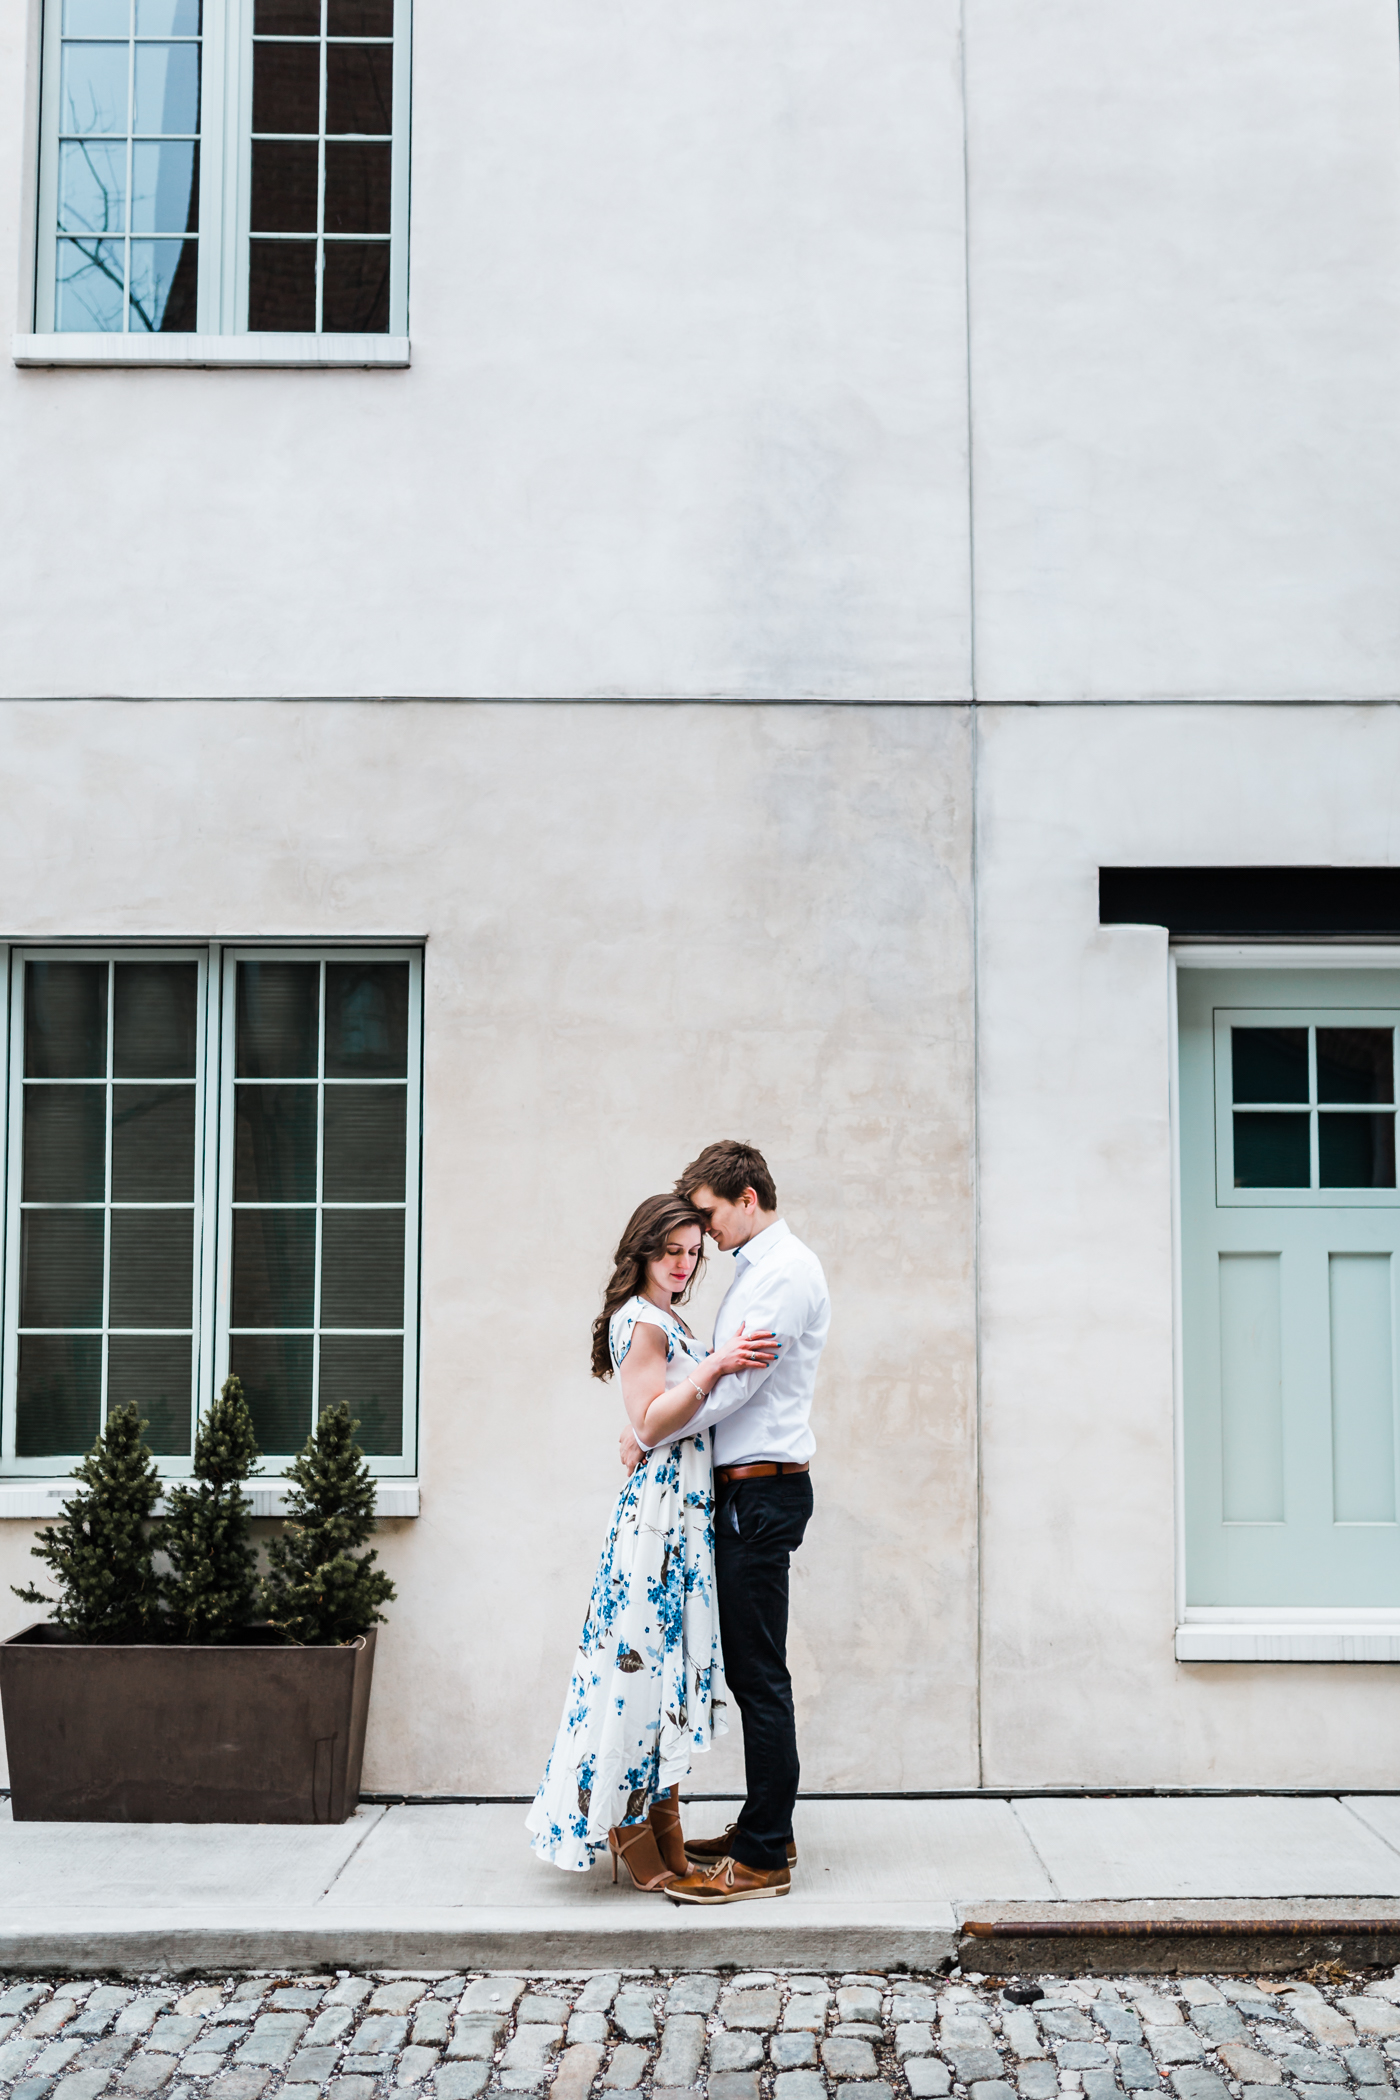 floral maxi dress engagement outfit inspo - Baltimore Maryland